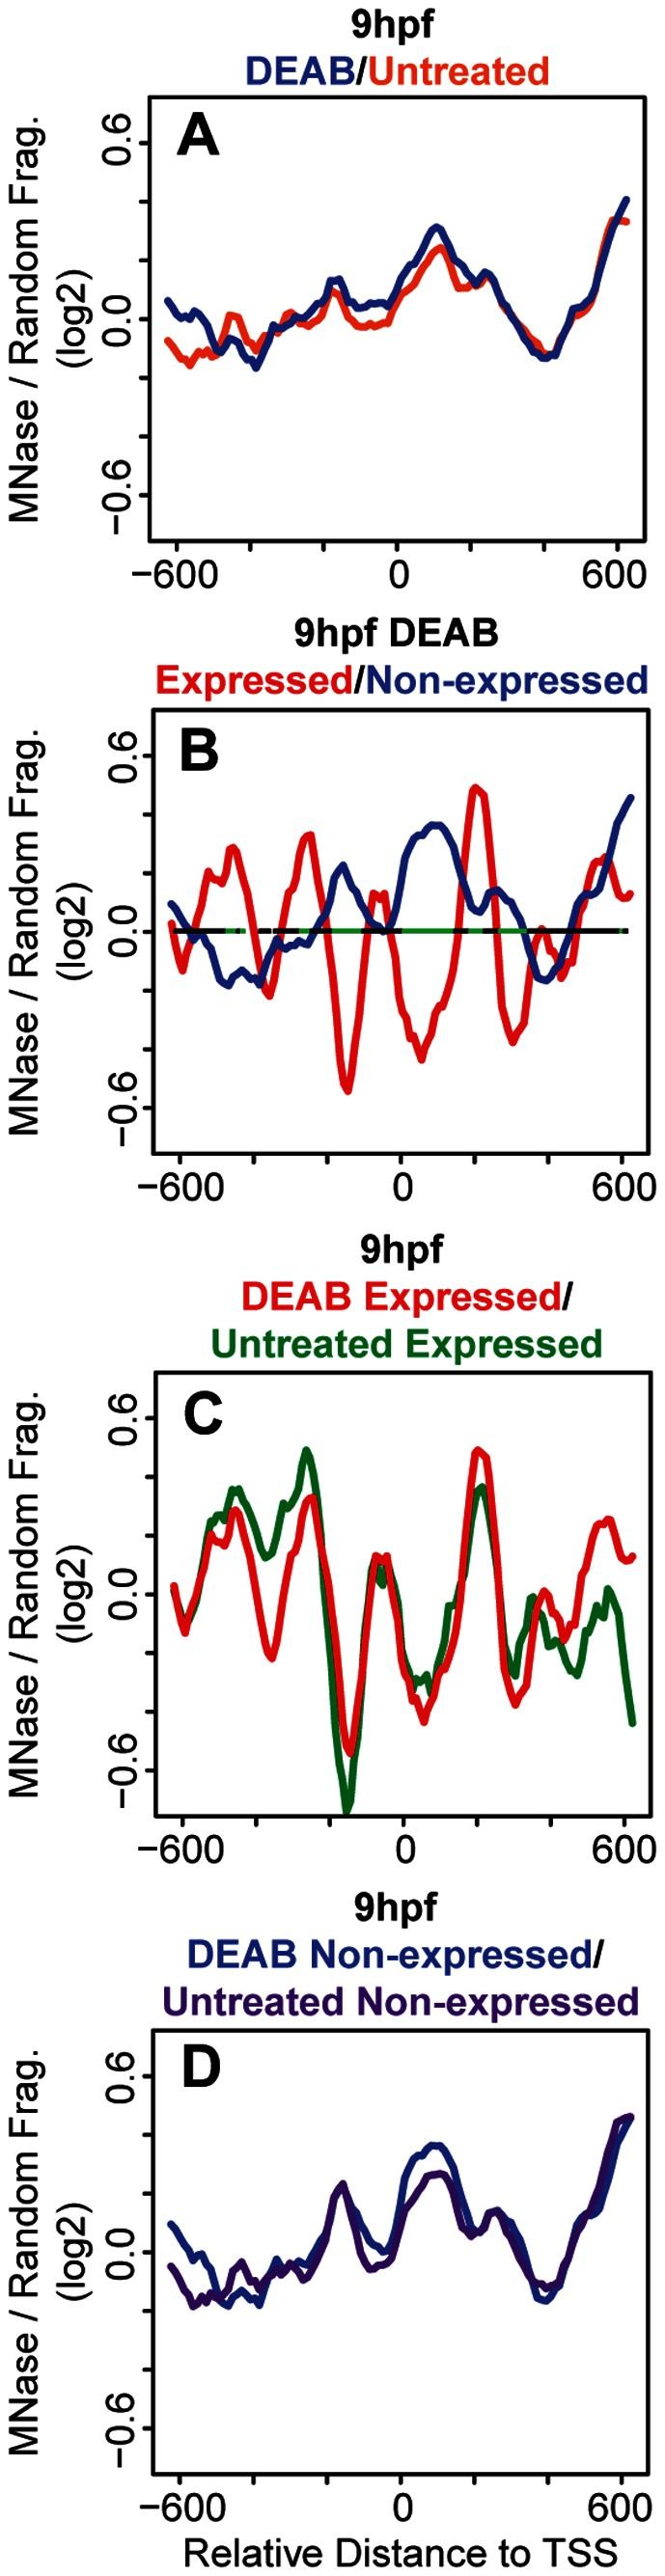 DEAB treatment has little effect on nucleosome organization at hox promoters. (A–D) Average nucleosome density was calculated as in figure 1 . (A) Overlay of average nucleosome profiles for 37 hox promoters from DEAB-treated (blue line) and untreated (orange line) embryos at 9 hpf. (B) Overlay of nucleosome profiles for expressed (red line) and non-expressed (blue line) promoters in DEAB-treated embryos at 9 hpf. Nucleosome densities at expressed and non-expressed promoters were compared using a Wilcoxon Ranked Sum test and statistically significant differences (p